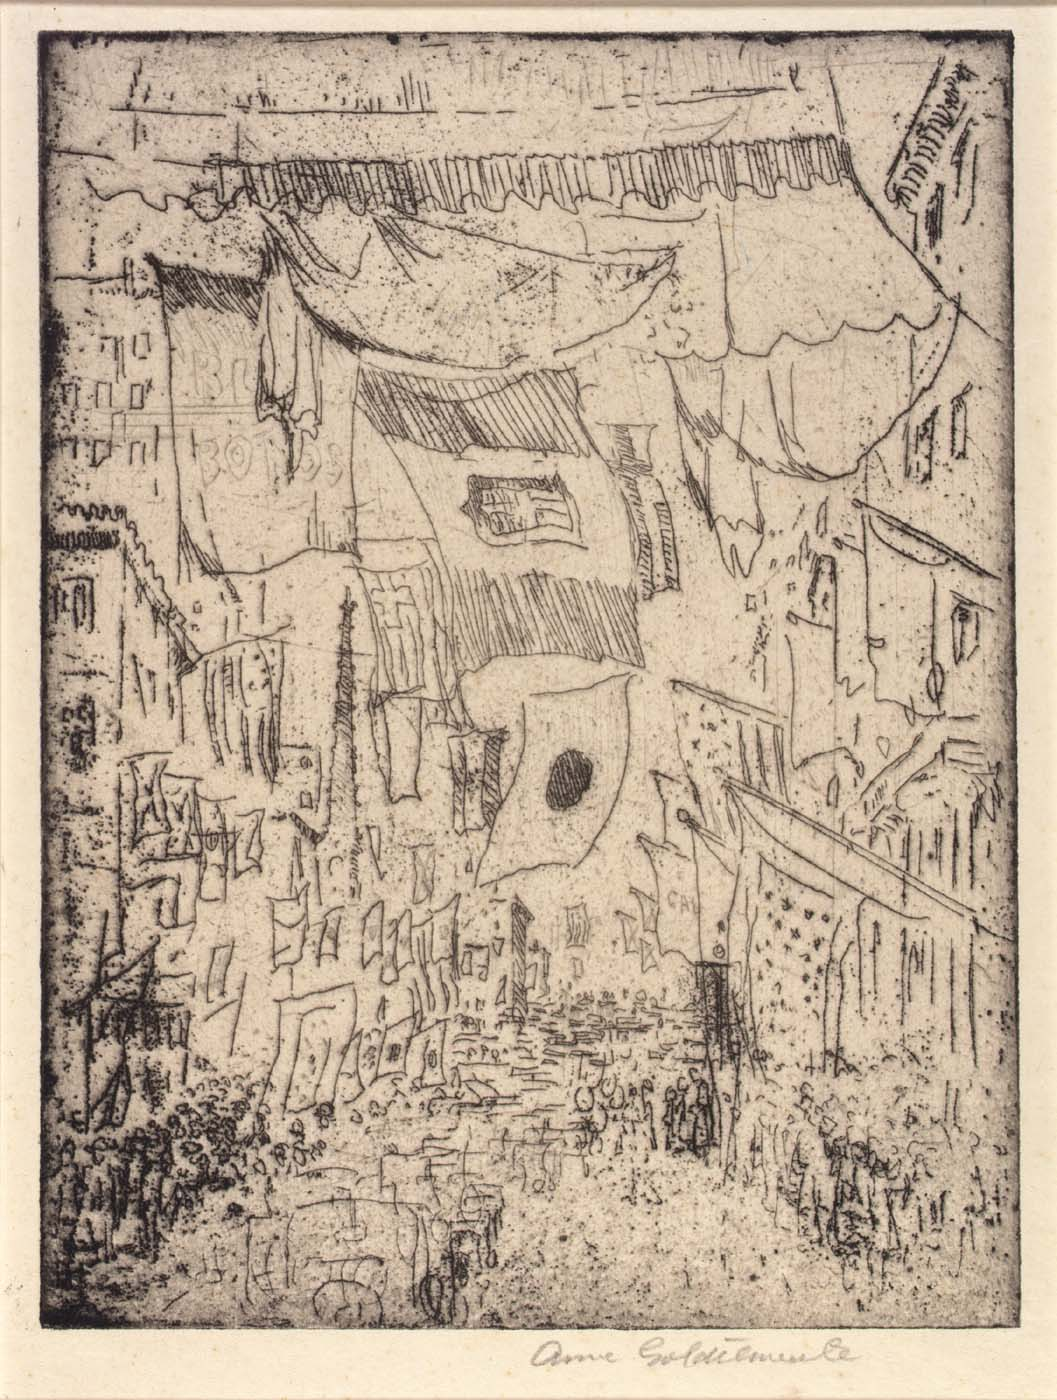 Avenue of the Allies (5th Avenue), 1918 — Anne Goldthwaite